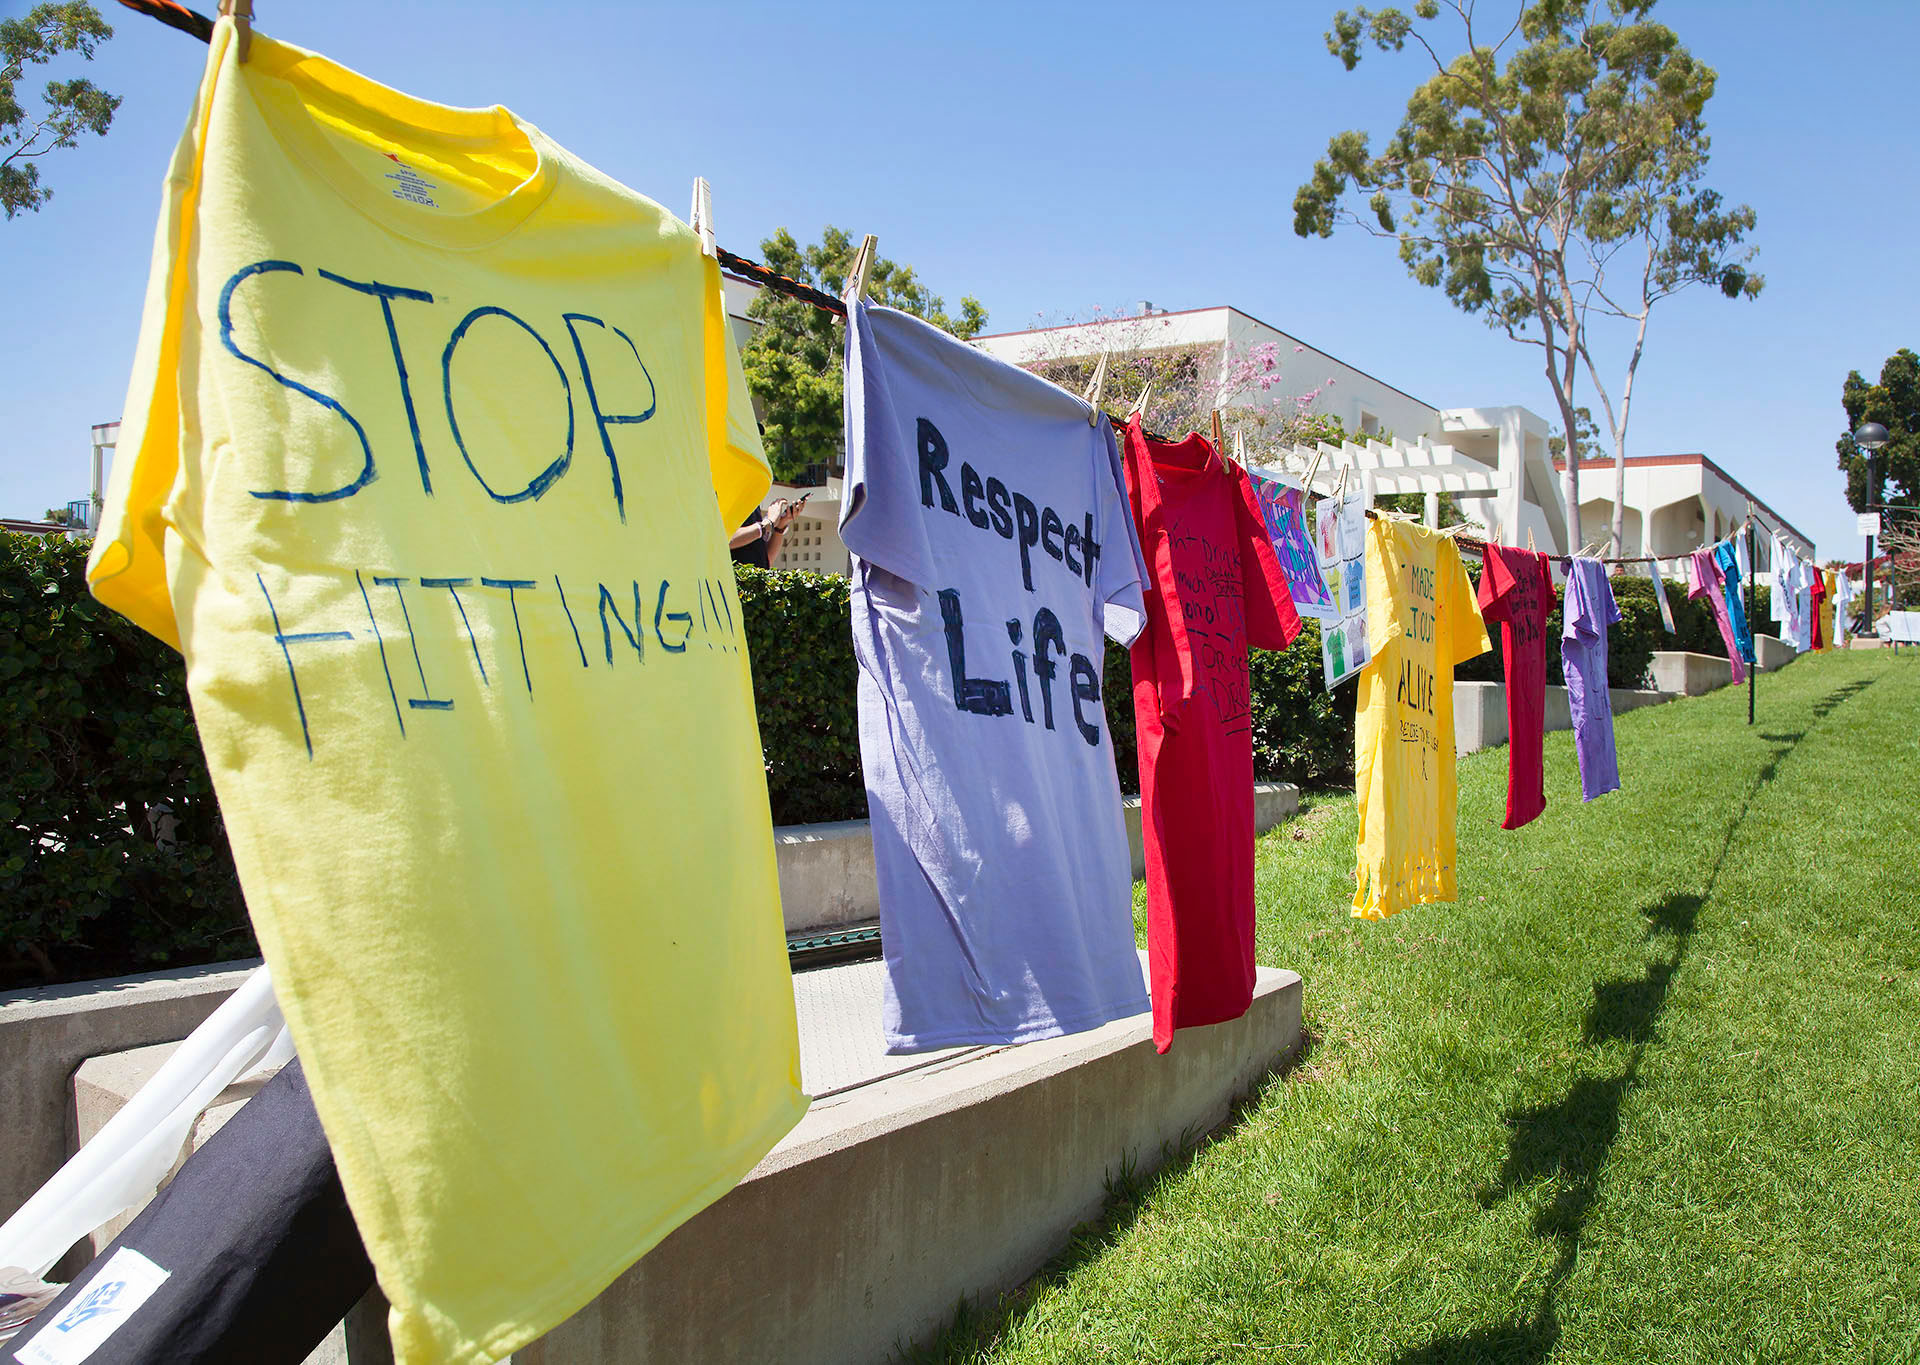 Different colored shirts that students have written on for the Clothesline Project on April 12, at the Friendship Plaza at City College. At the event, students made different colored shirts to tell their story. A red shirt symbolizes rape, a yellow shirt symbolizes domestic violence, and a purple shirt stands for physical or sexual abuse against the LGBT+ community.